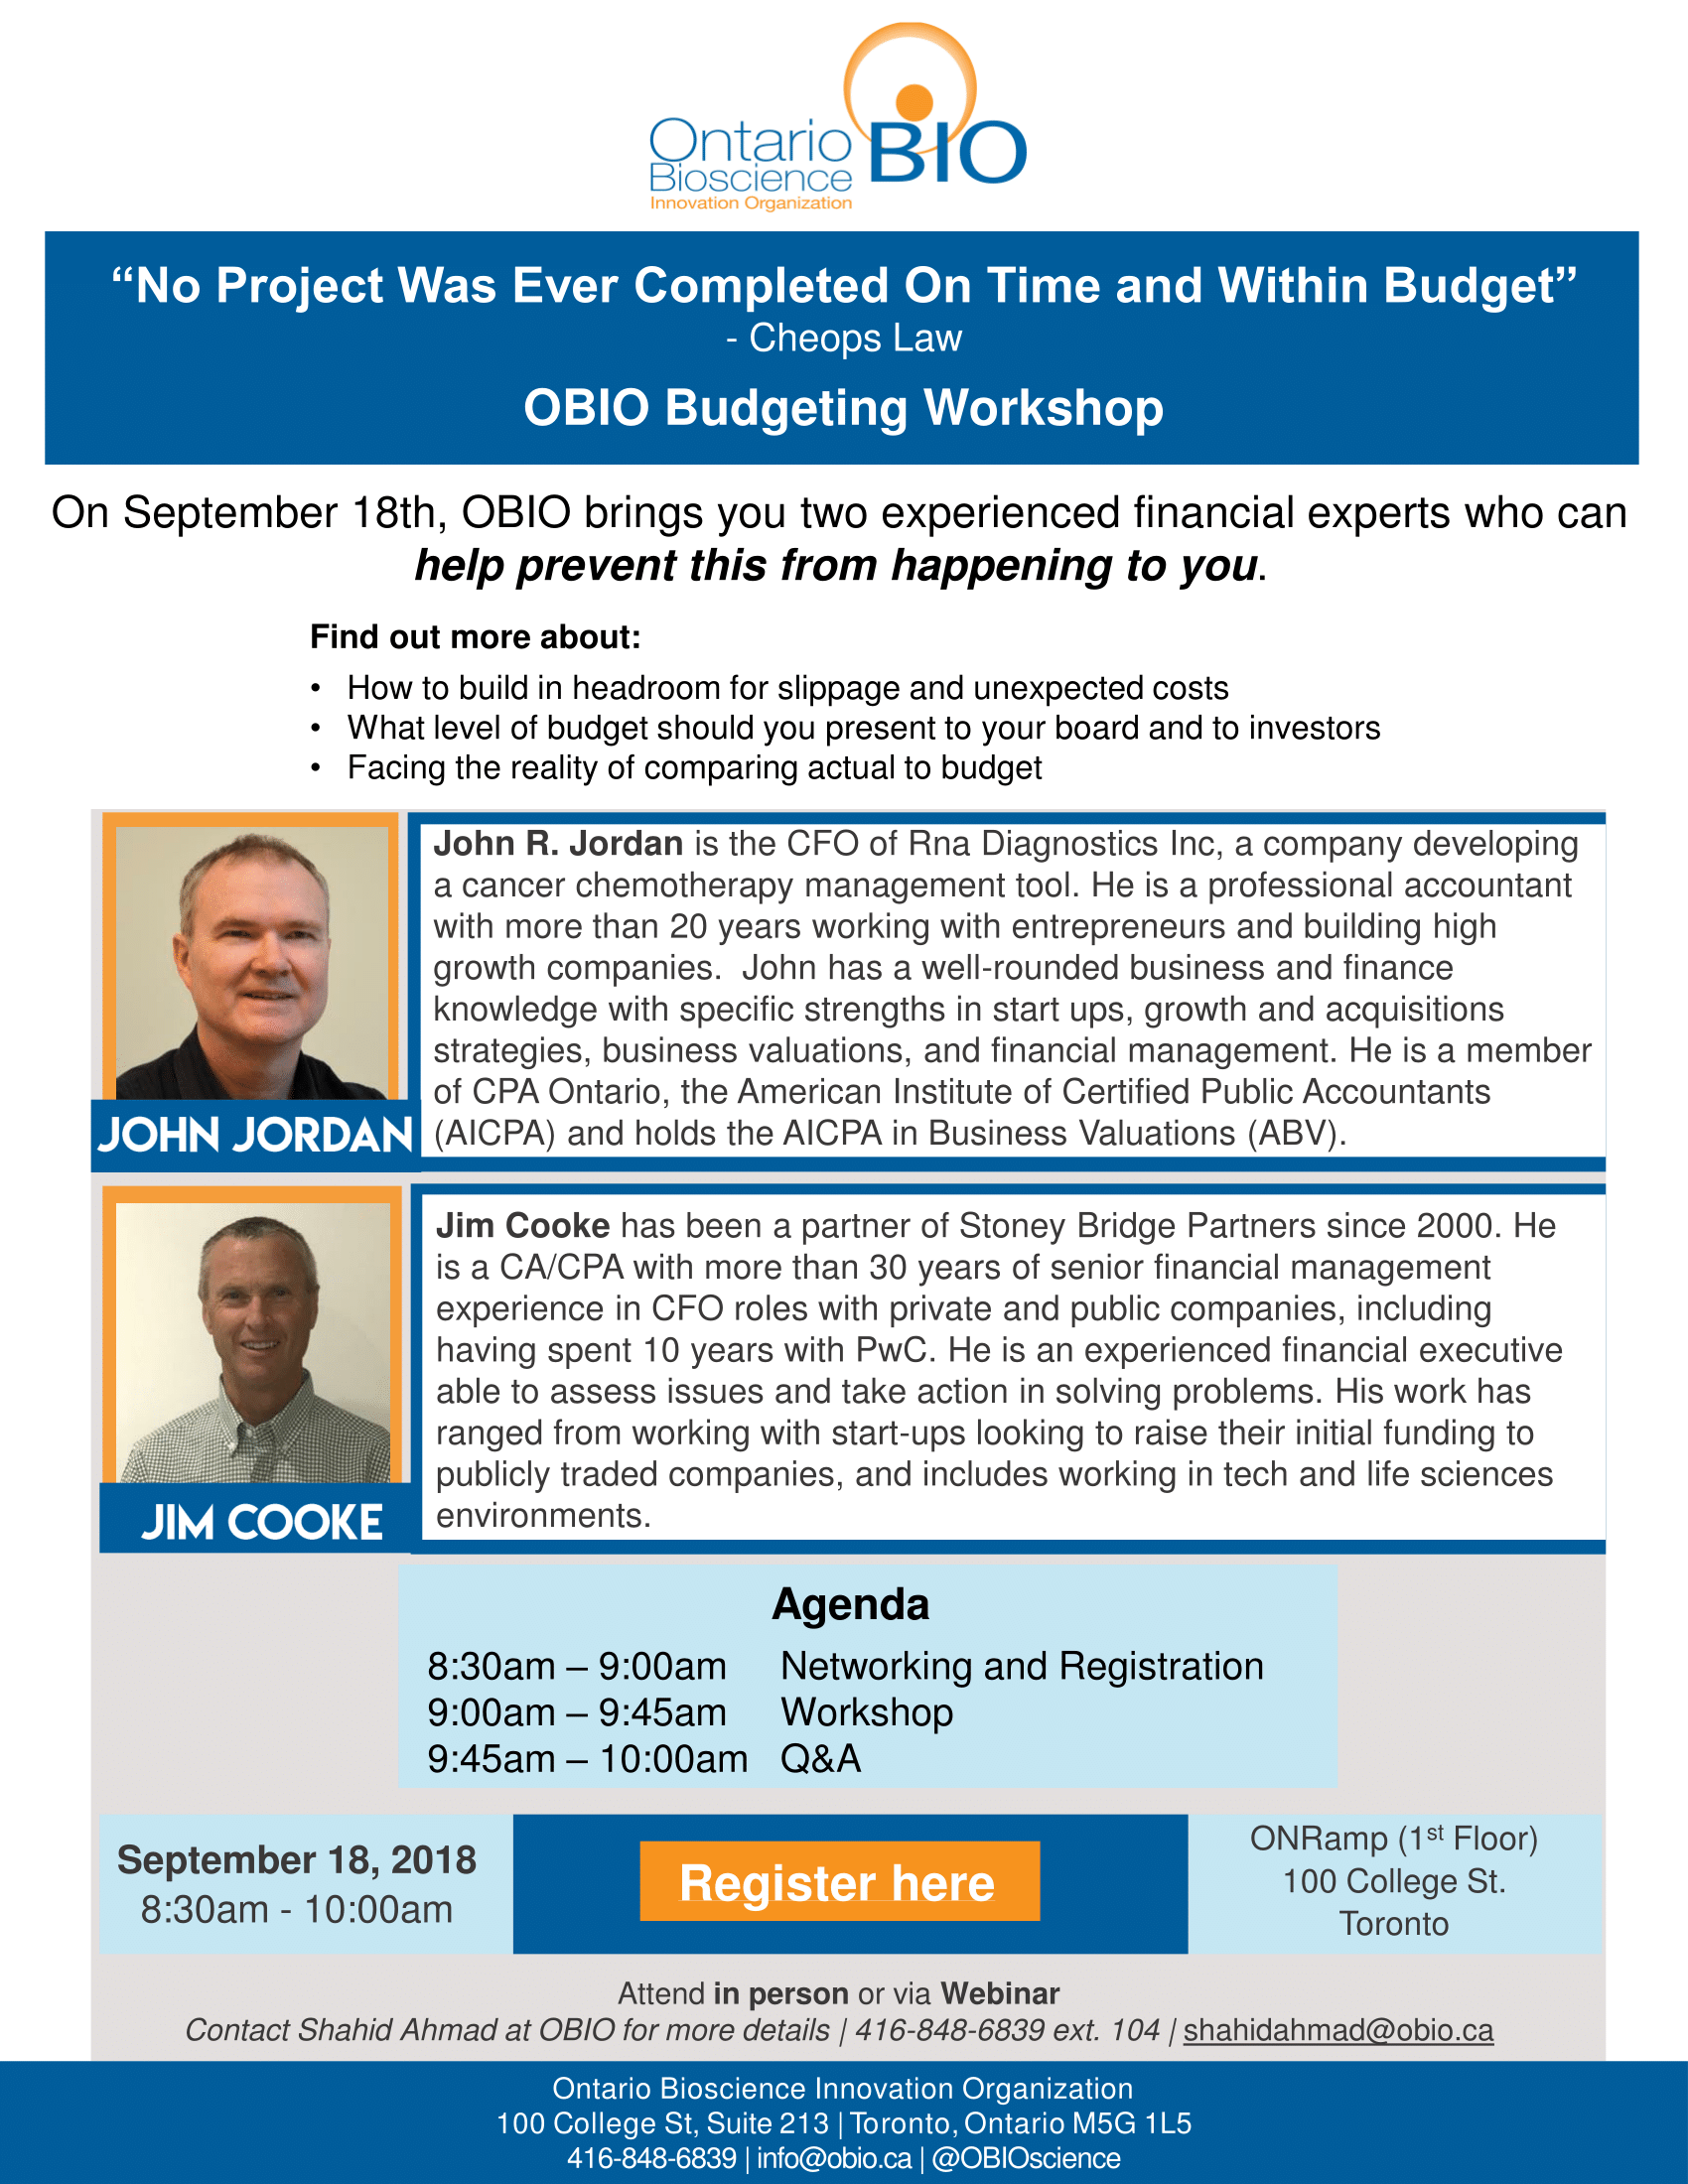 20180918 - OBIO Budgeting Workshop - September 18th - Final-1.png